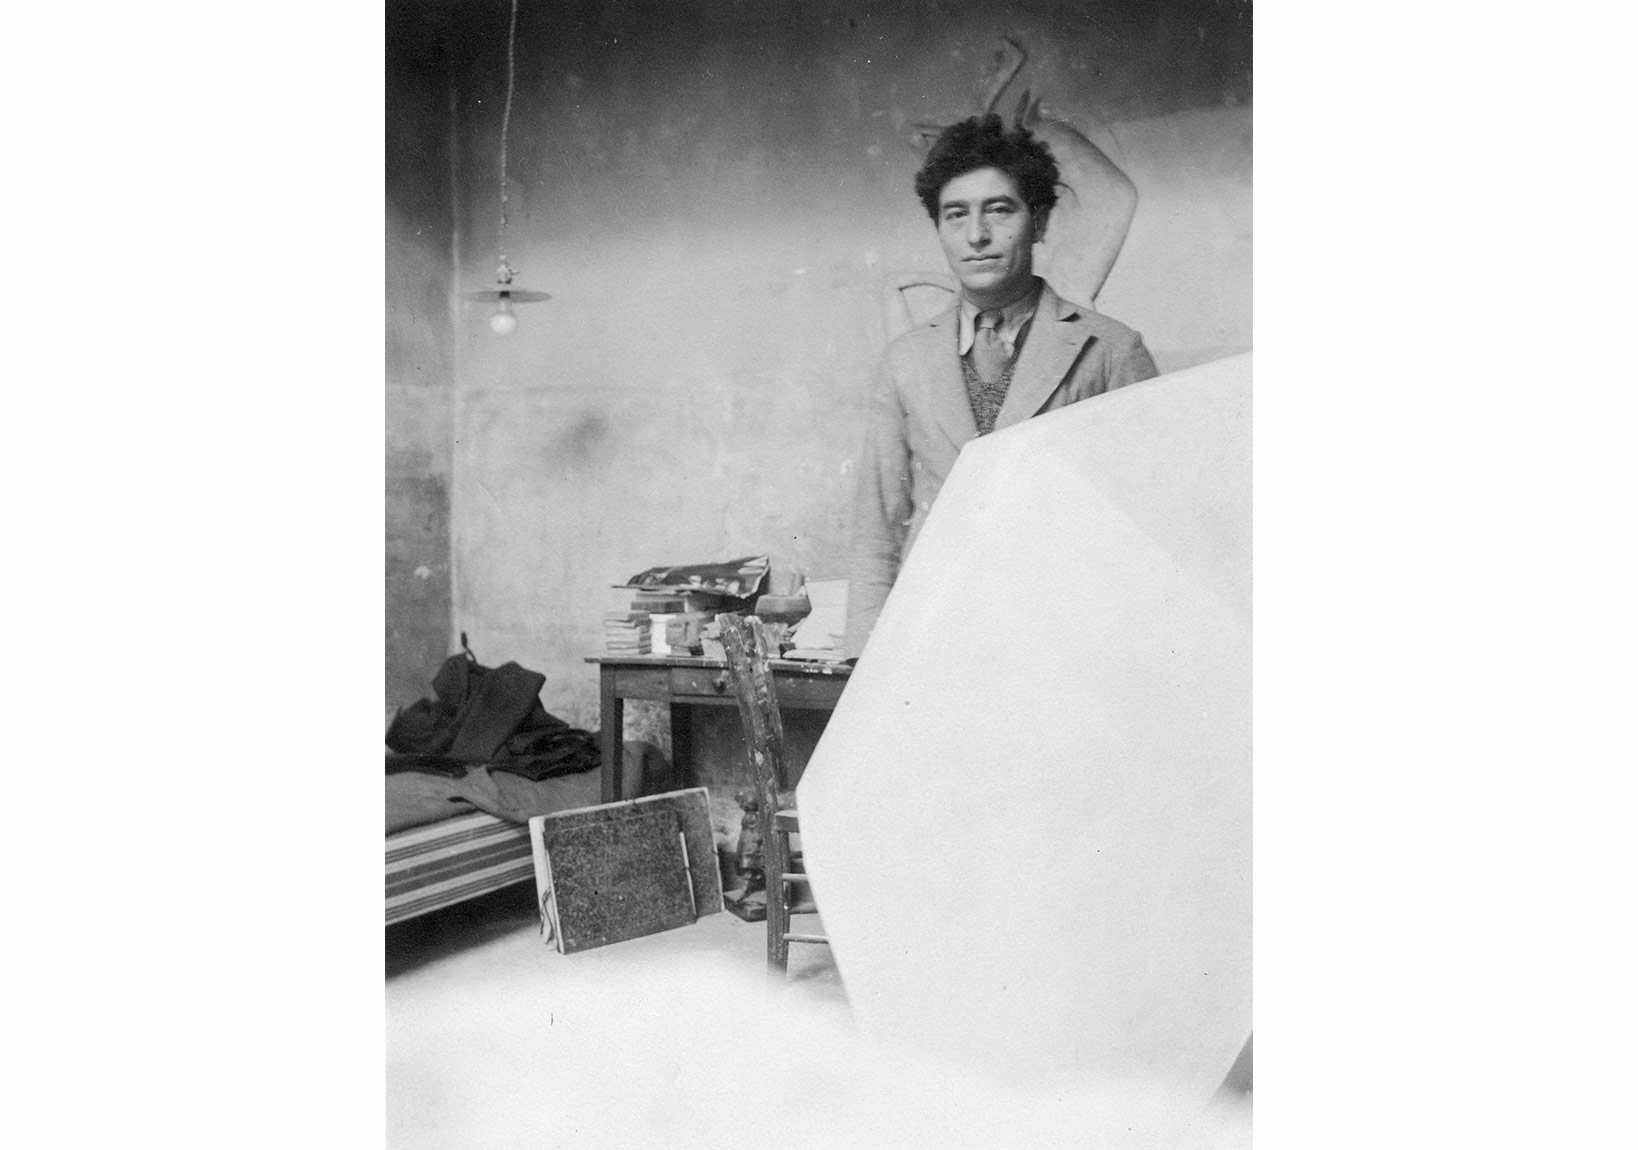 Giacometti atölyesinde alçıdan Küp heykeli ile, Paris, 1933'ten sonra / Giacometti in his studio with the plaster sculpture Cube, Paris, after 1933 Fotoğraf / Photo: Anonim / Anonymous Giacometti Vakfı Arşivi / Giacometti Foundation Archive © Estate Giacometti (Fondation Giacometti + ADAGP) Paris, 2015